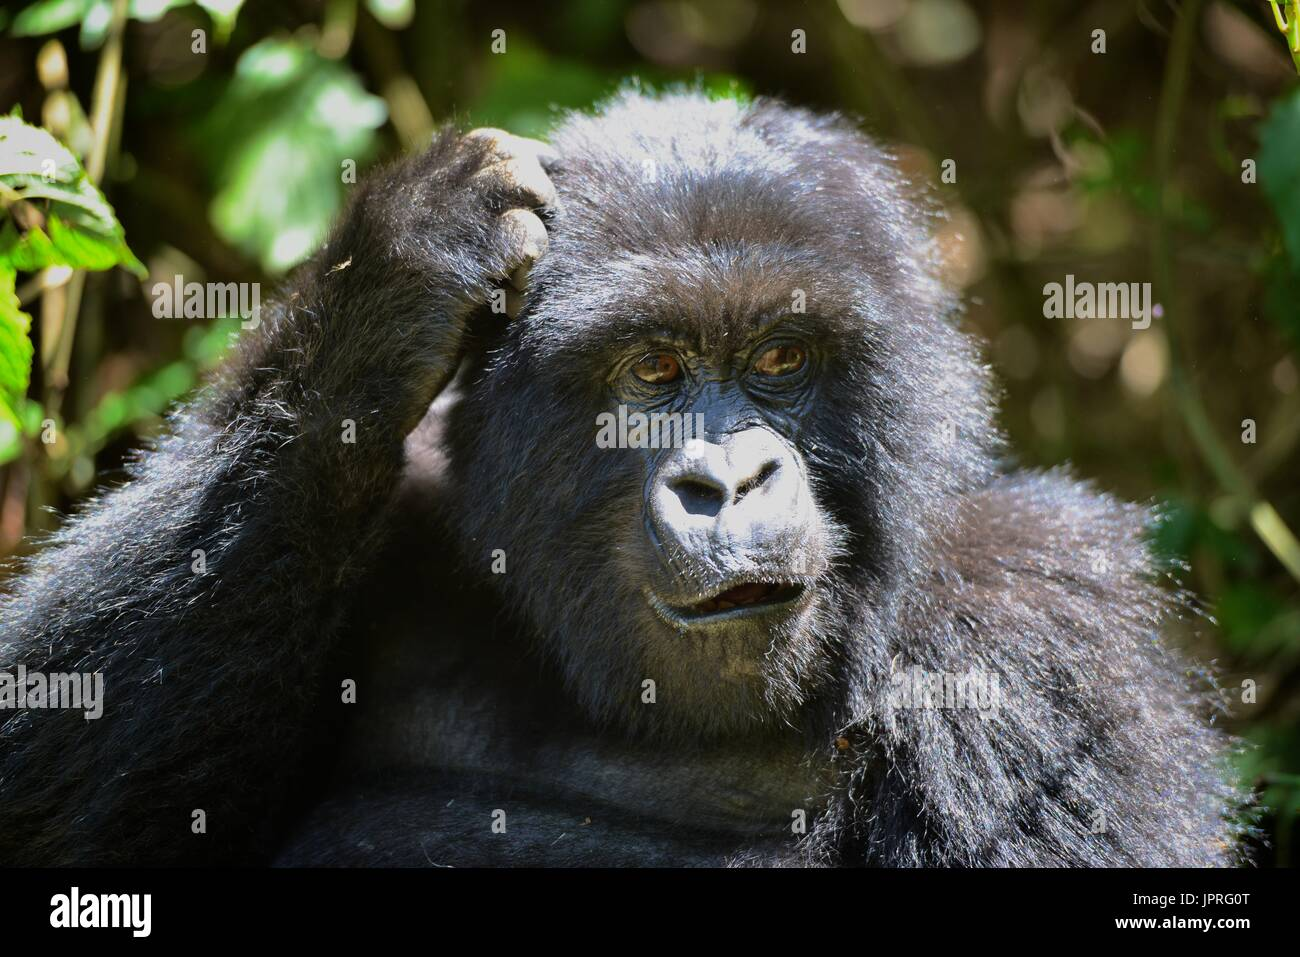 One of the Agashya Family members in the Volcano Mountains of Northern Rwanda. - Stock Image